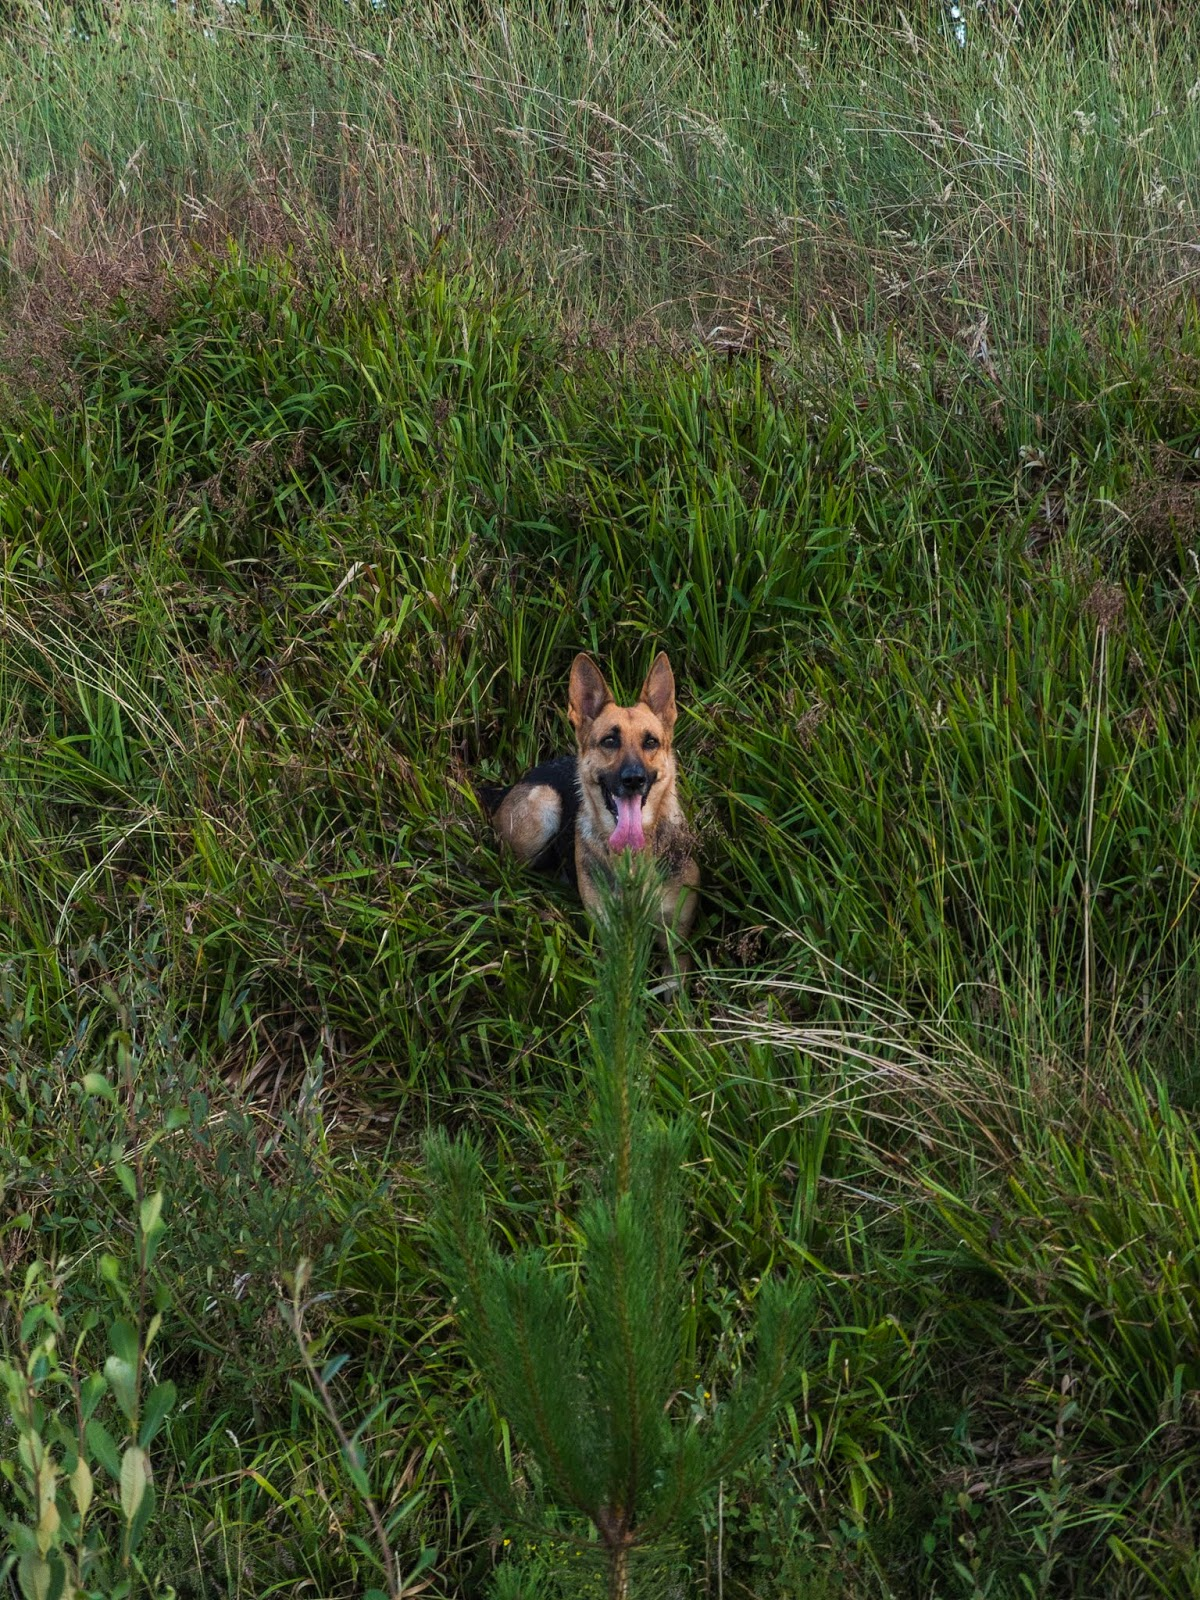 A German Shepherd sitting in long grass on a steep hill looking at the camera.